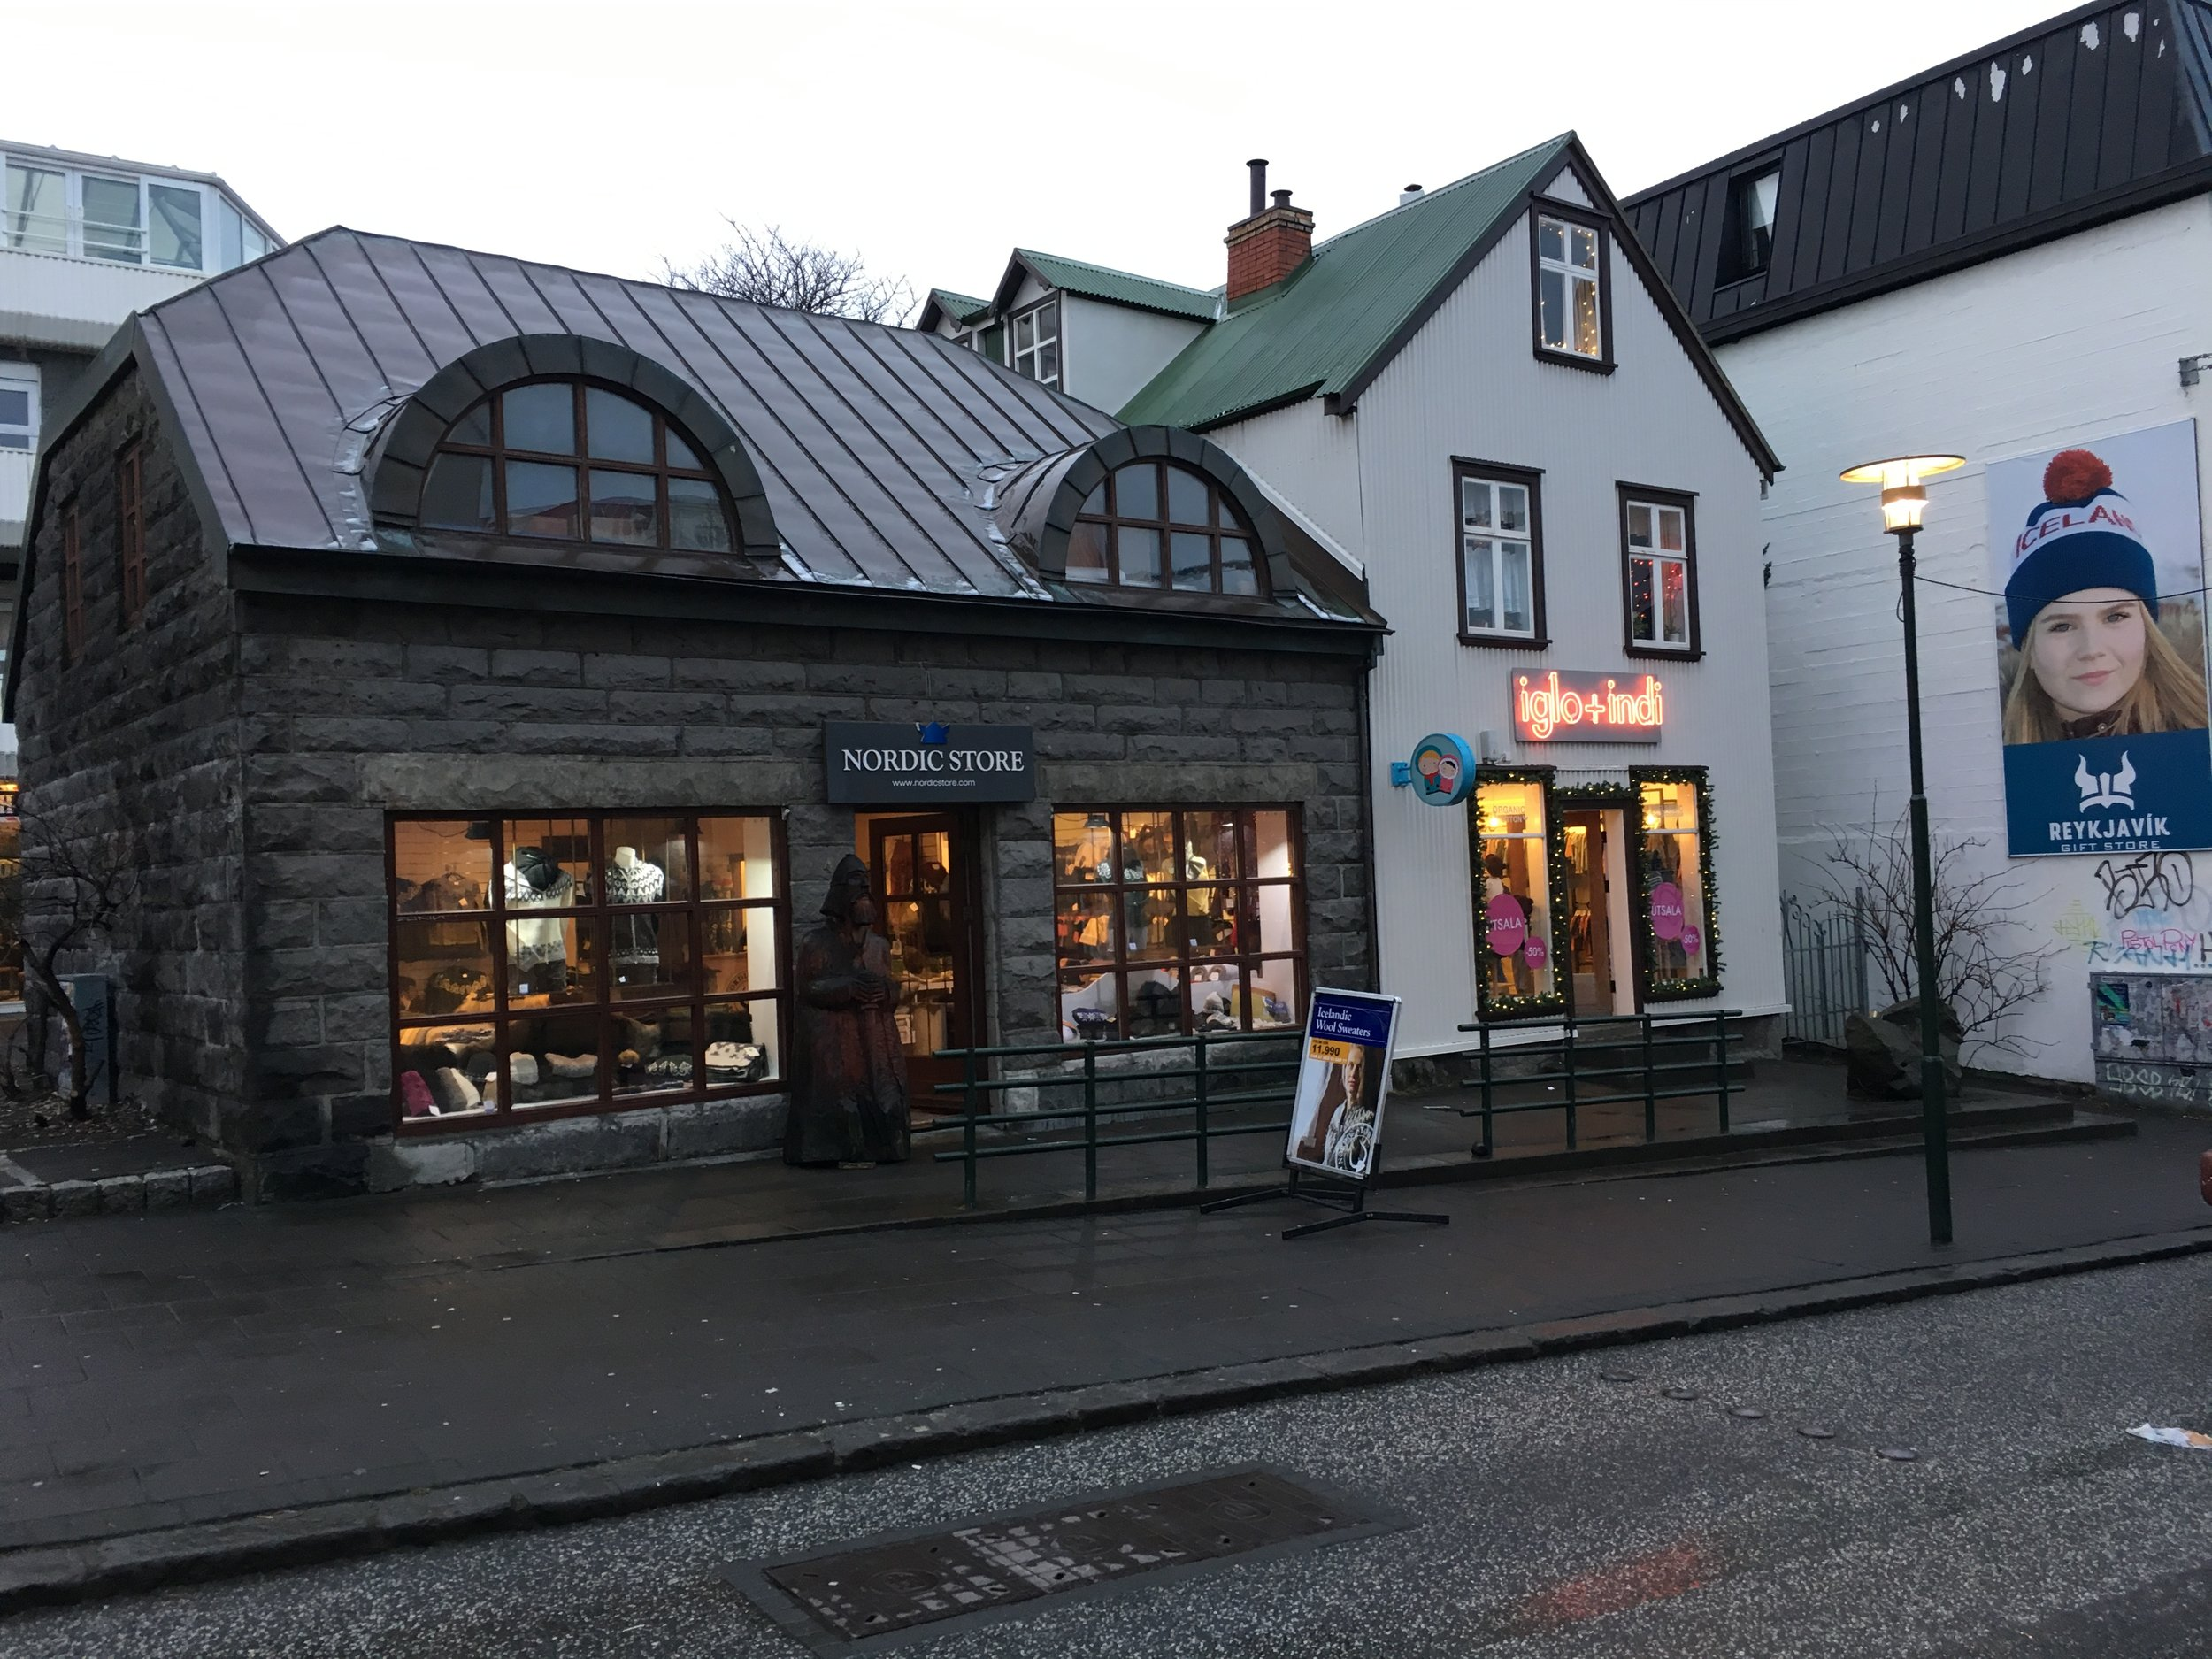 Fancier gallery shops also line the main shopping areas along Skolavoroustigur and Laugavegur